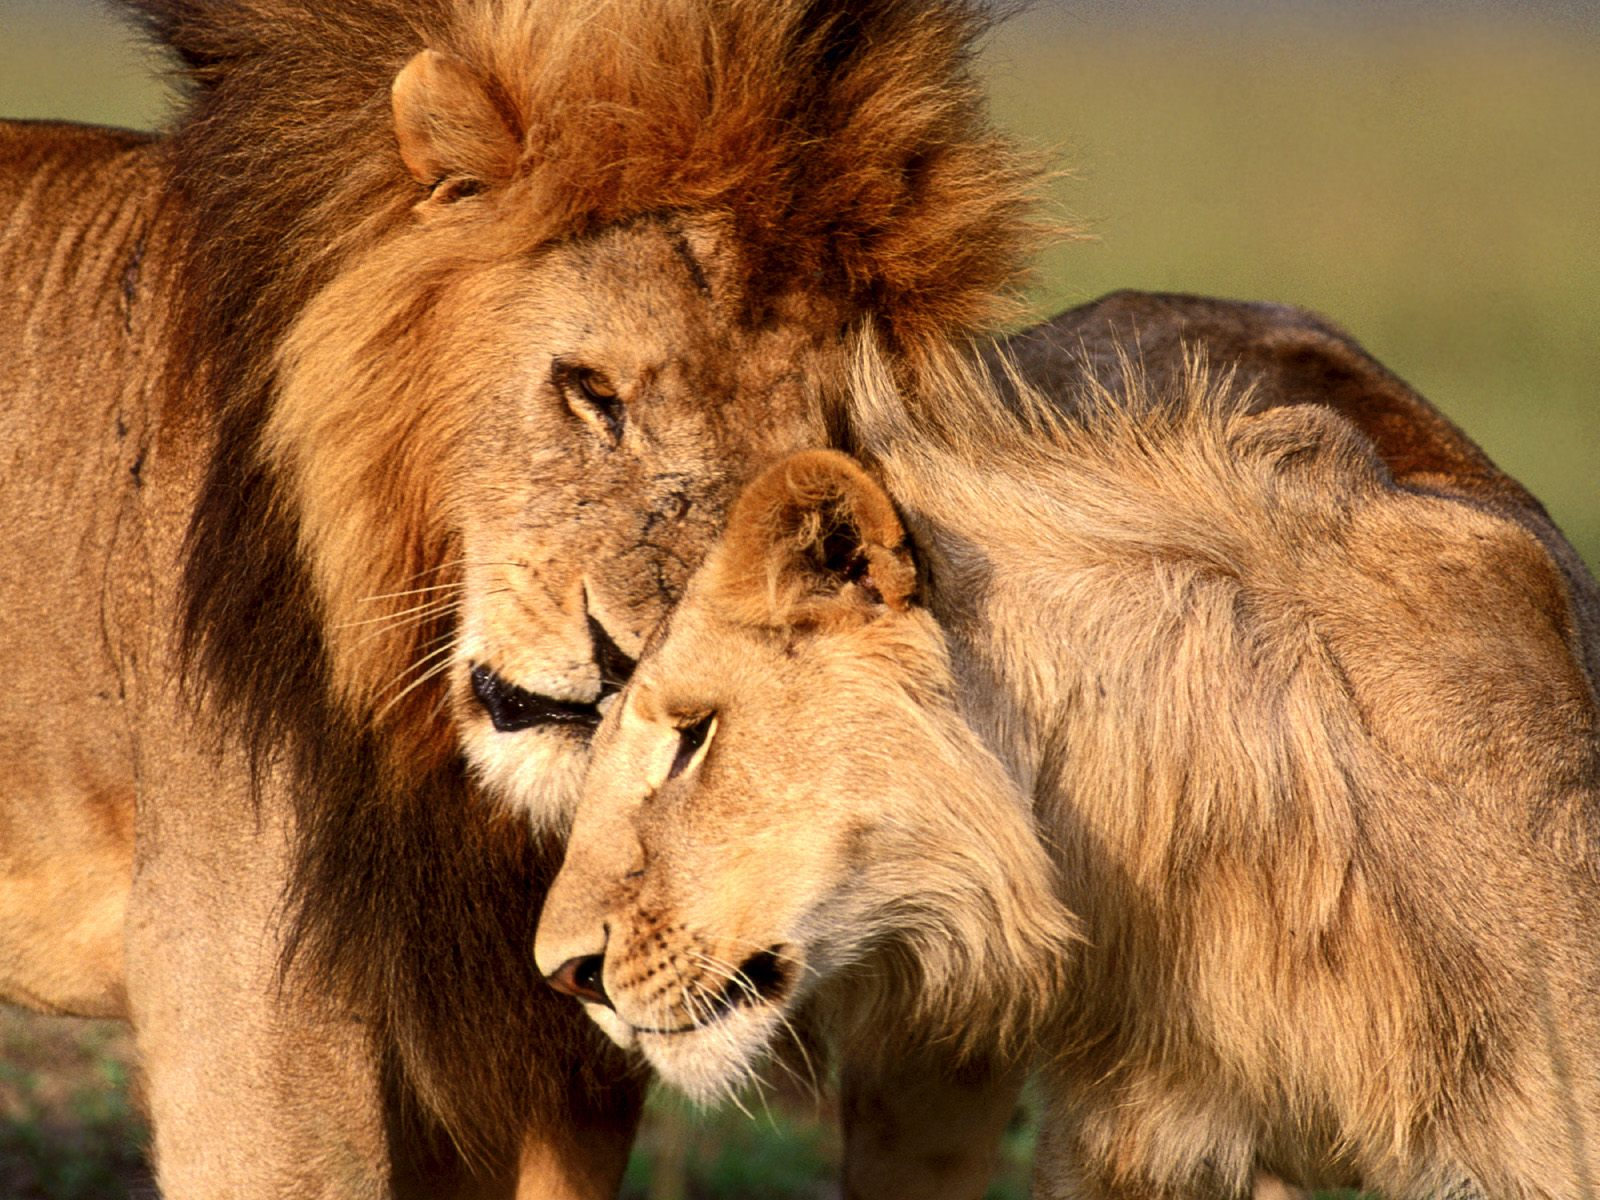 http://www.thewallpapers.org/photo/21589/Lions-Love.jpg